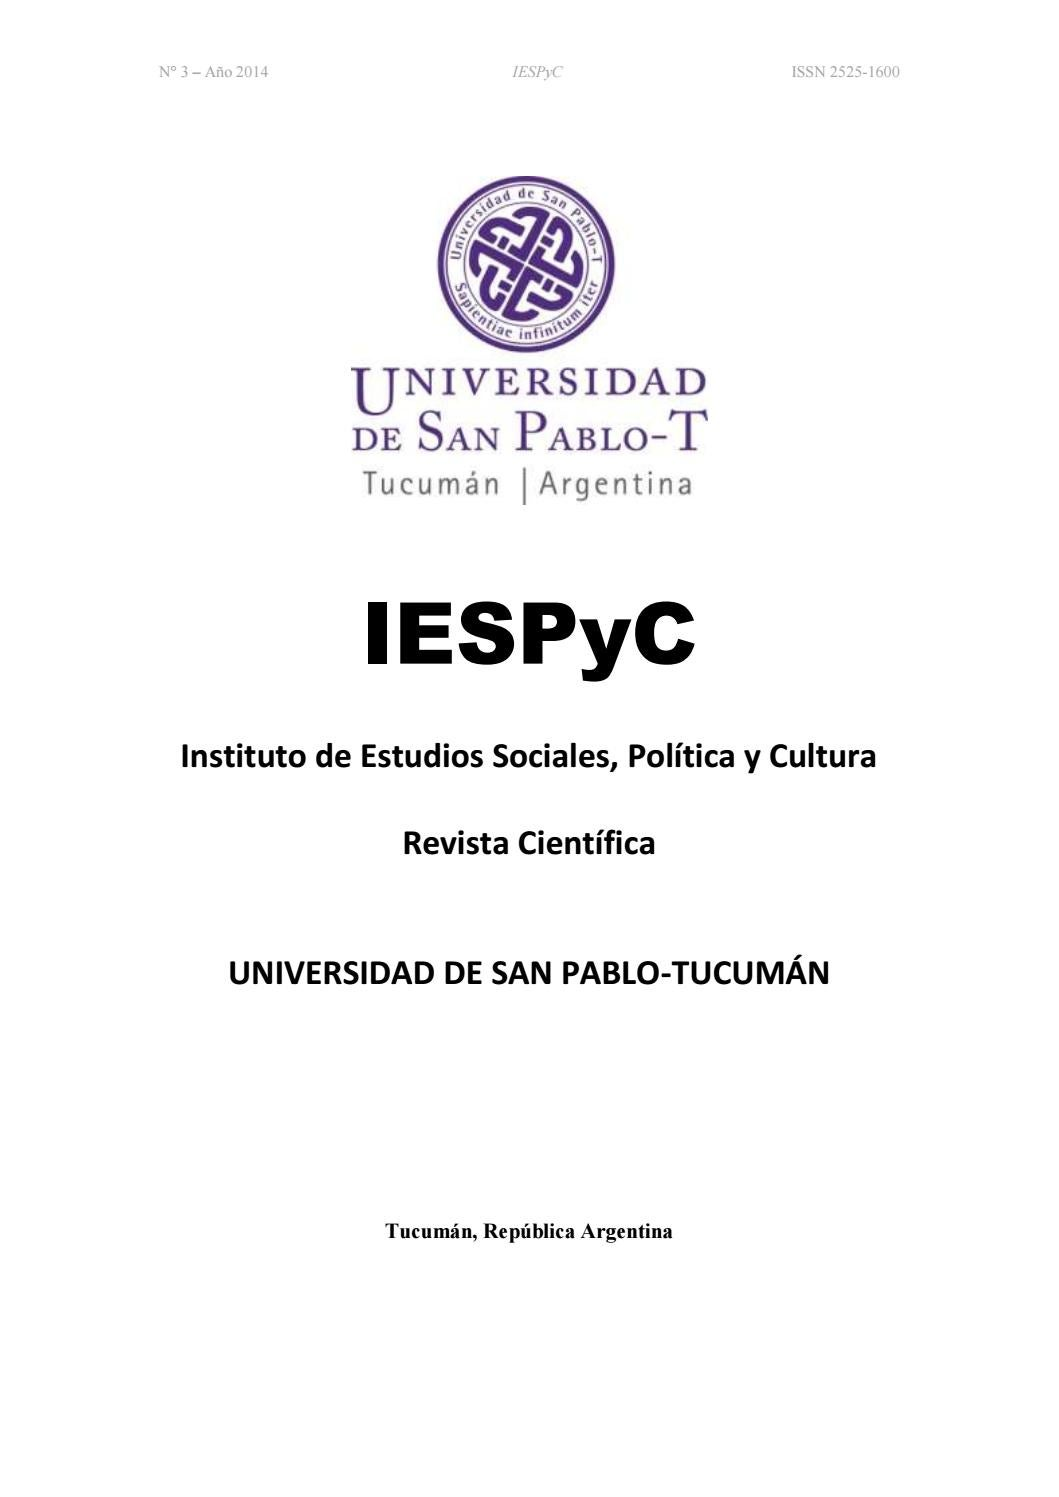 Iespyc 2014 by idecongresos - issuu